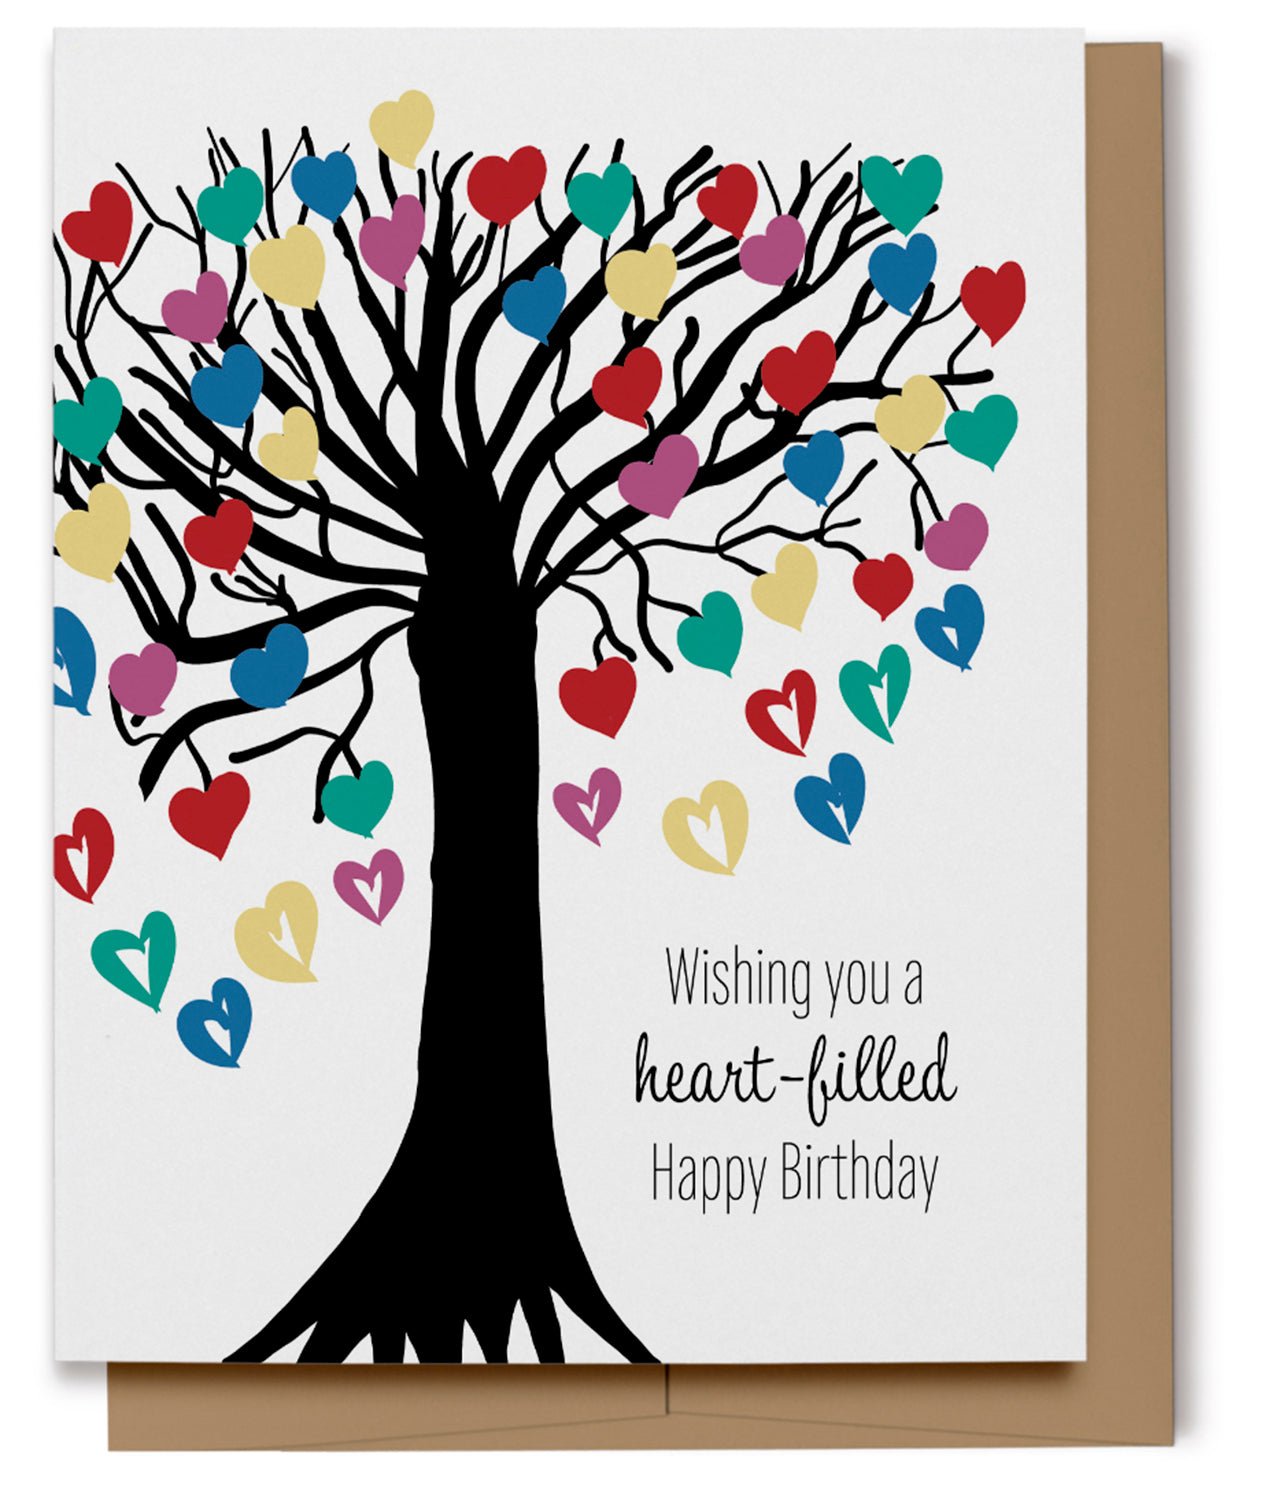 Heart-filled Happy Birthday Card (Imperfect)